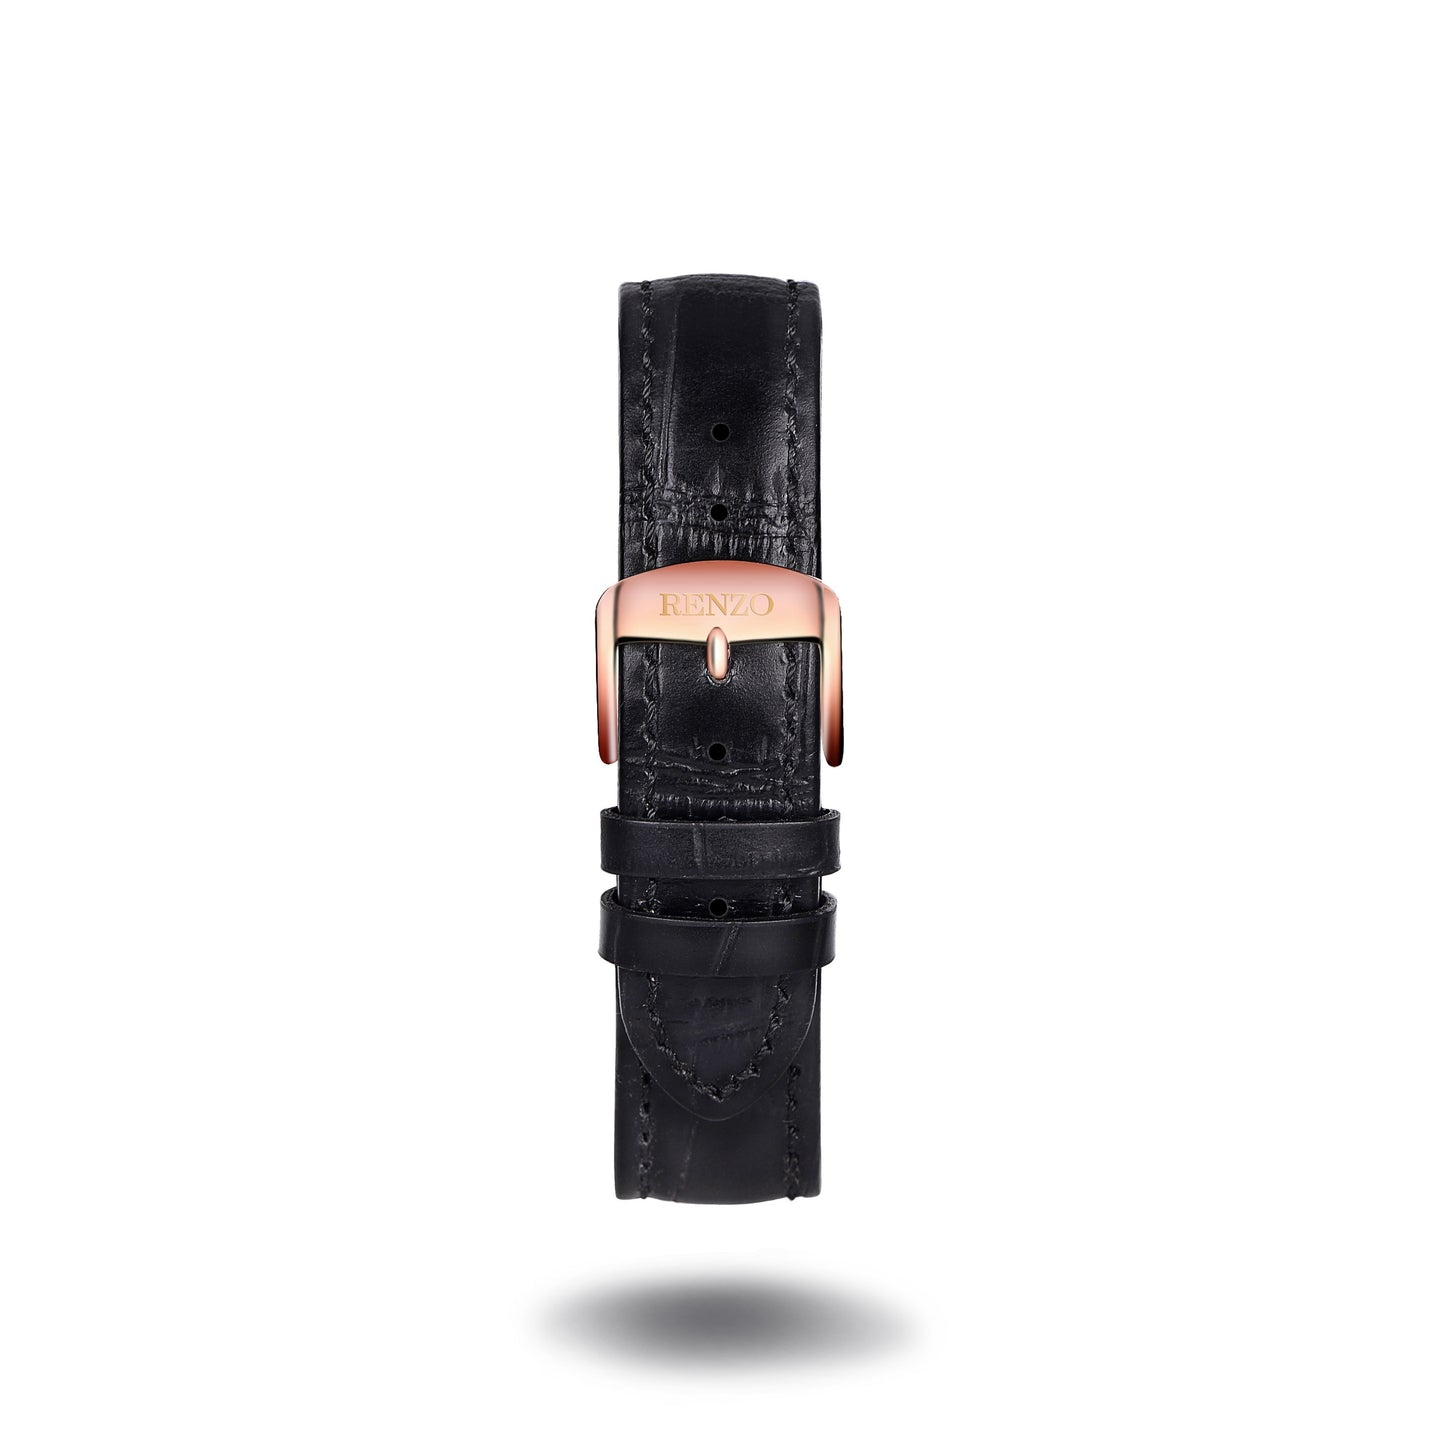 Strap - Croco Black Rose Gold Strap